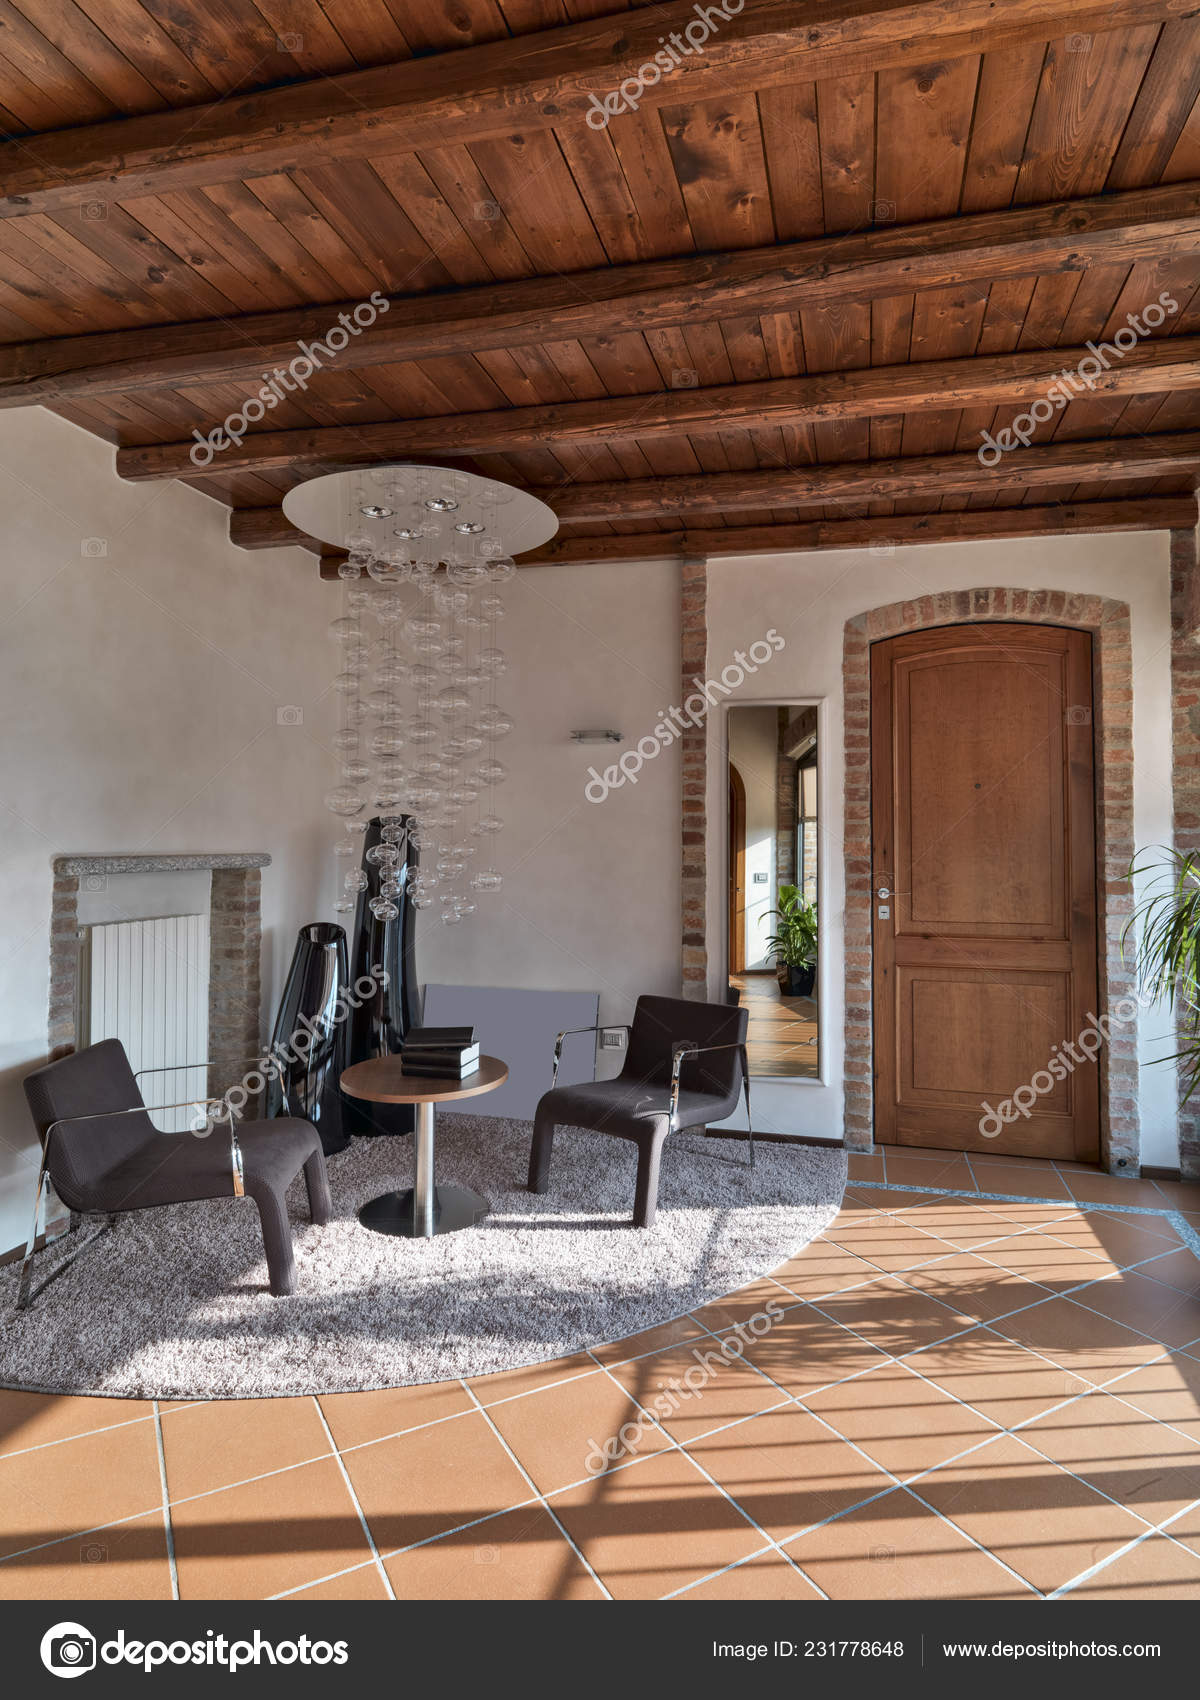 Picture of: Leather Armchairs Table Living Room Tiles Floor Wood Ceiling Stock Photo C Aaphotograph 231778648